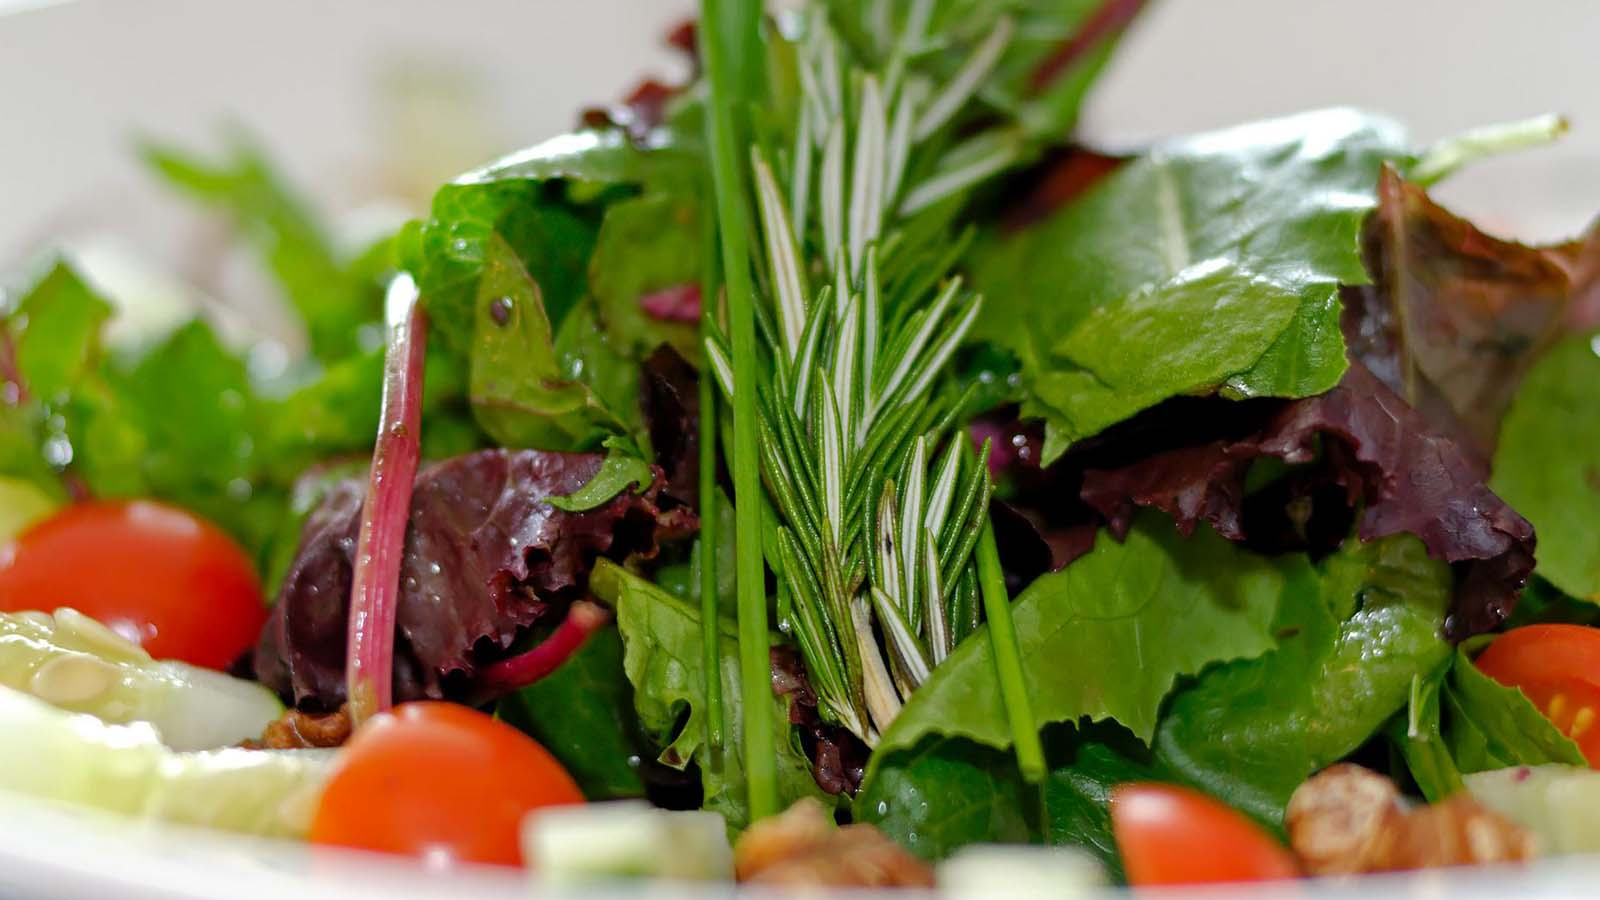 We offer fresh salads and several vegetarian options.